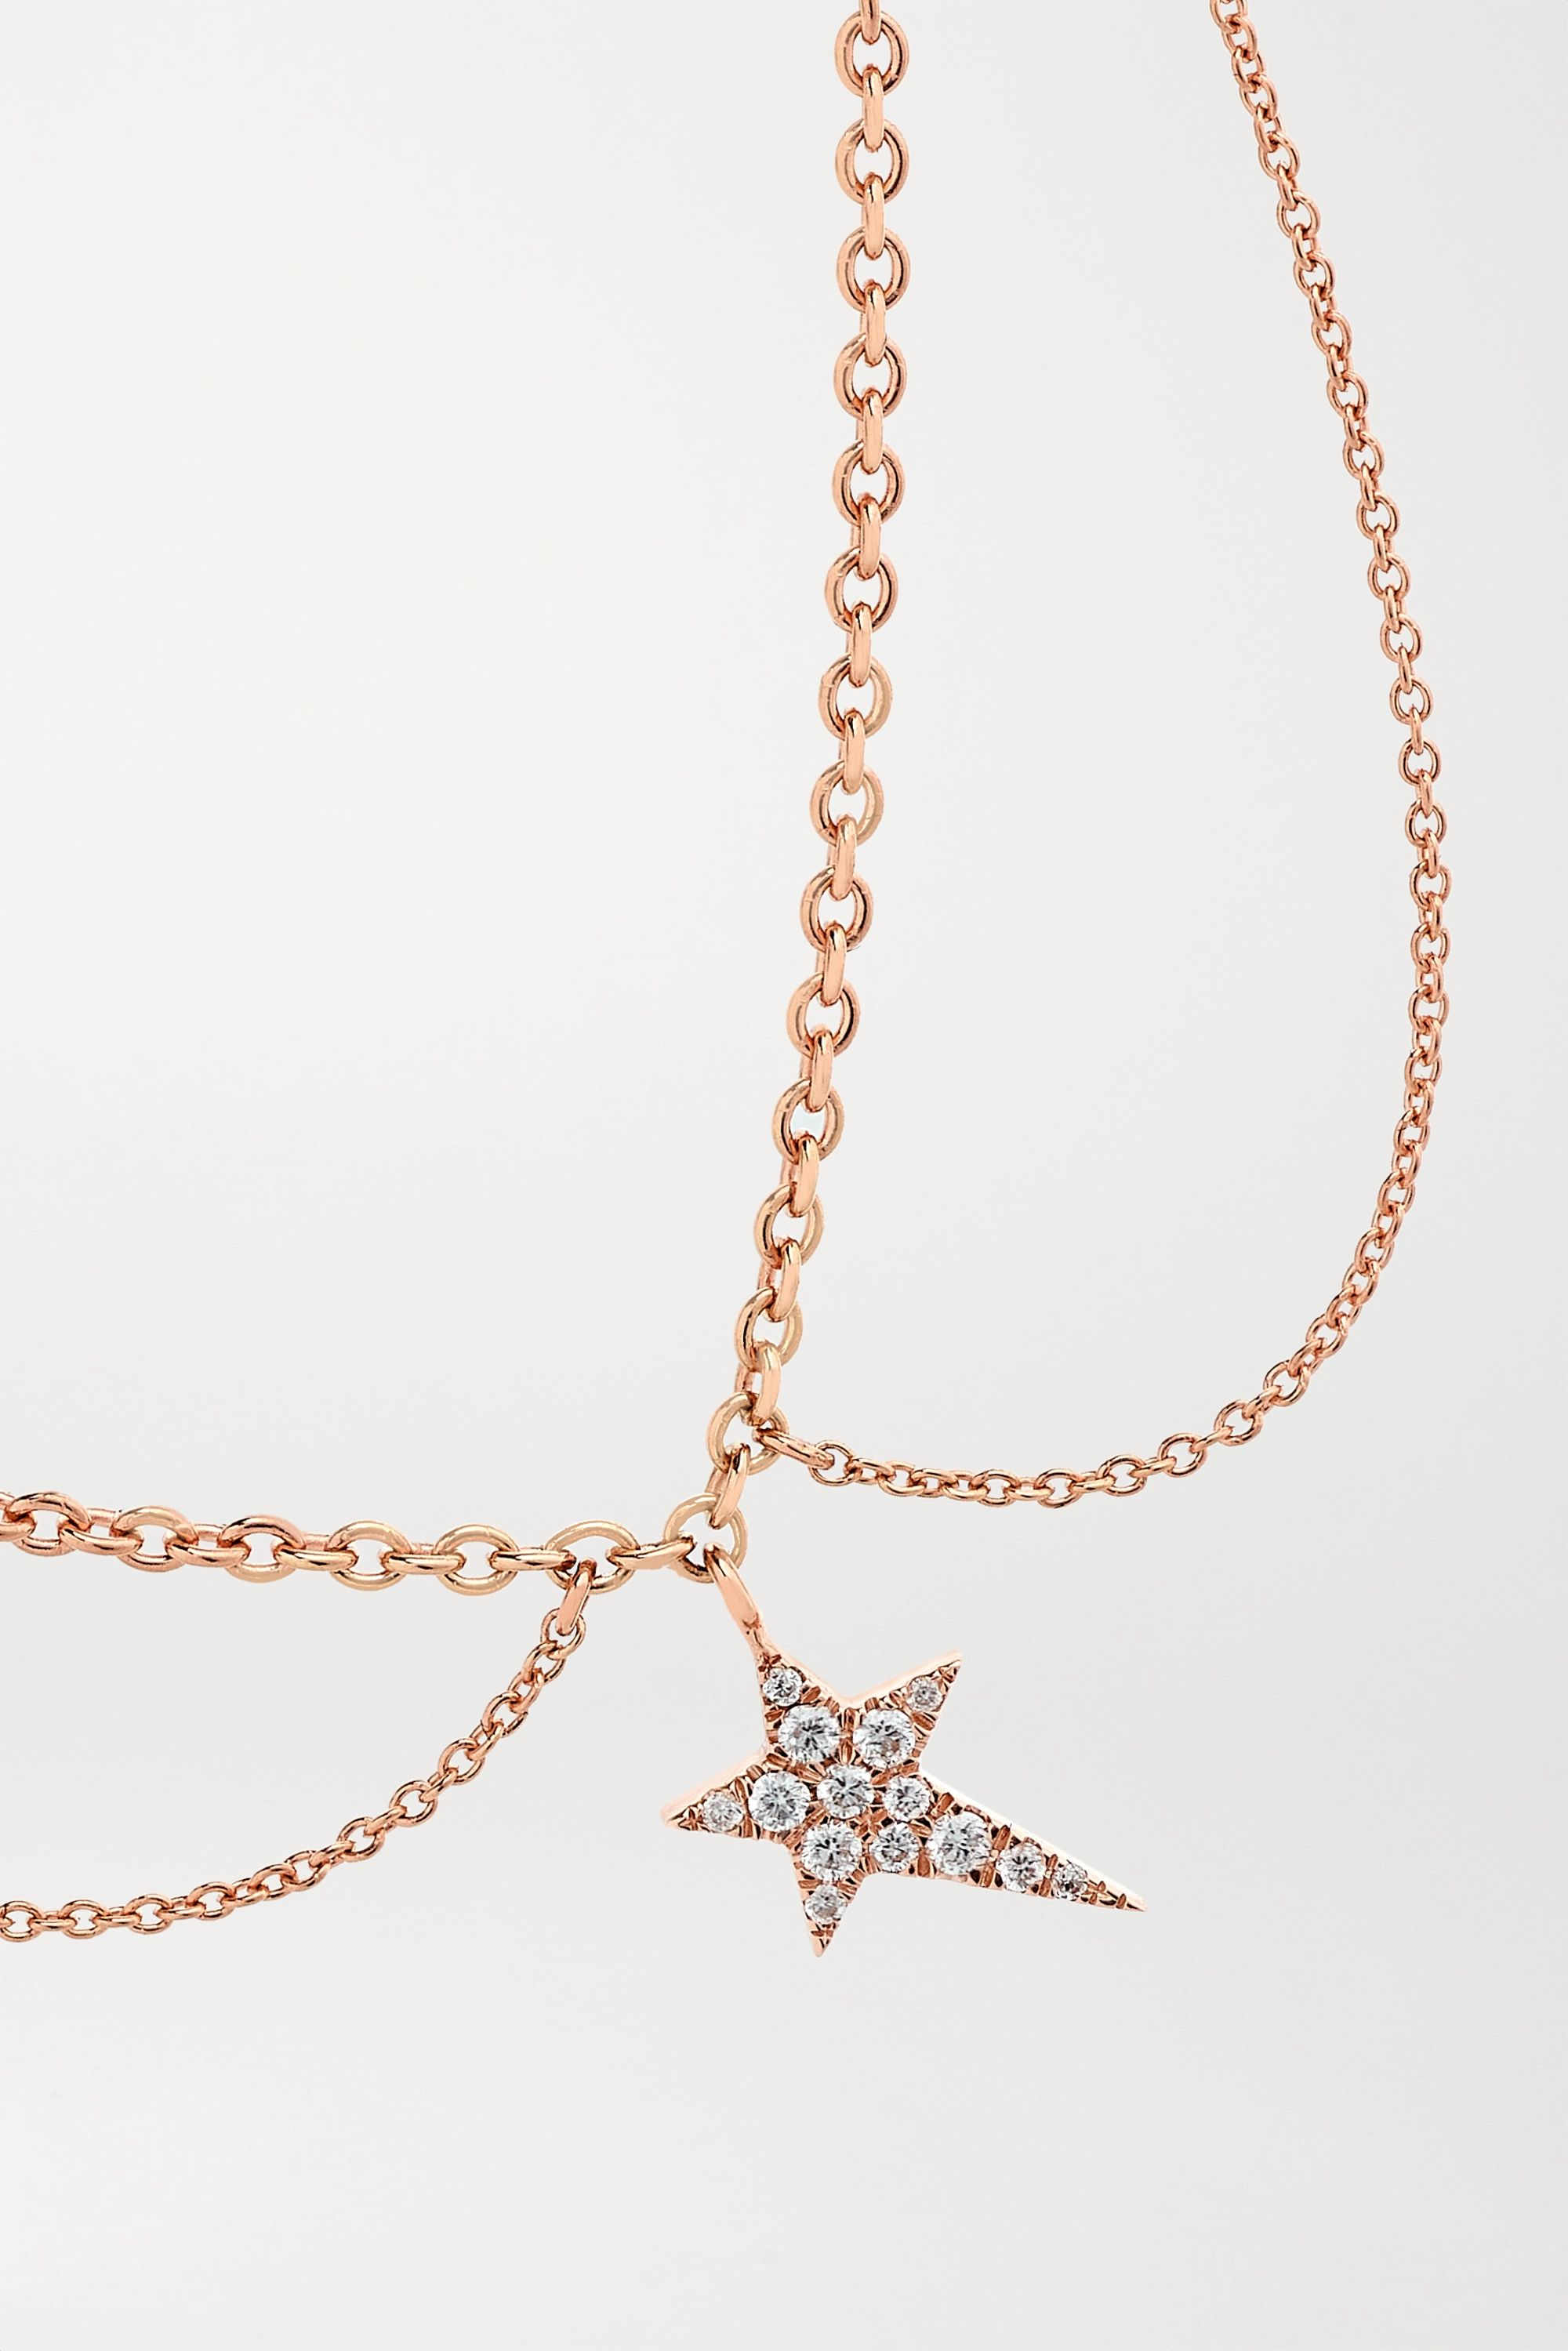 Diane Kordas Star 14-karat rose gold diamond anklet